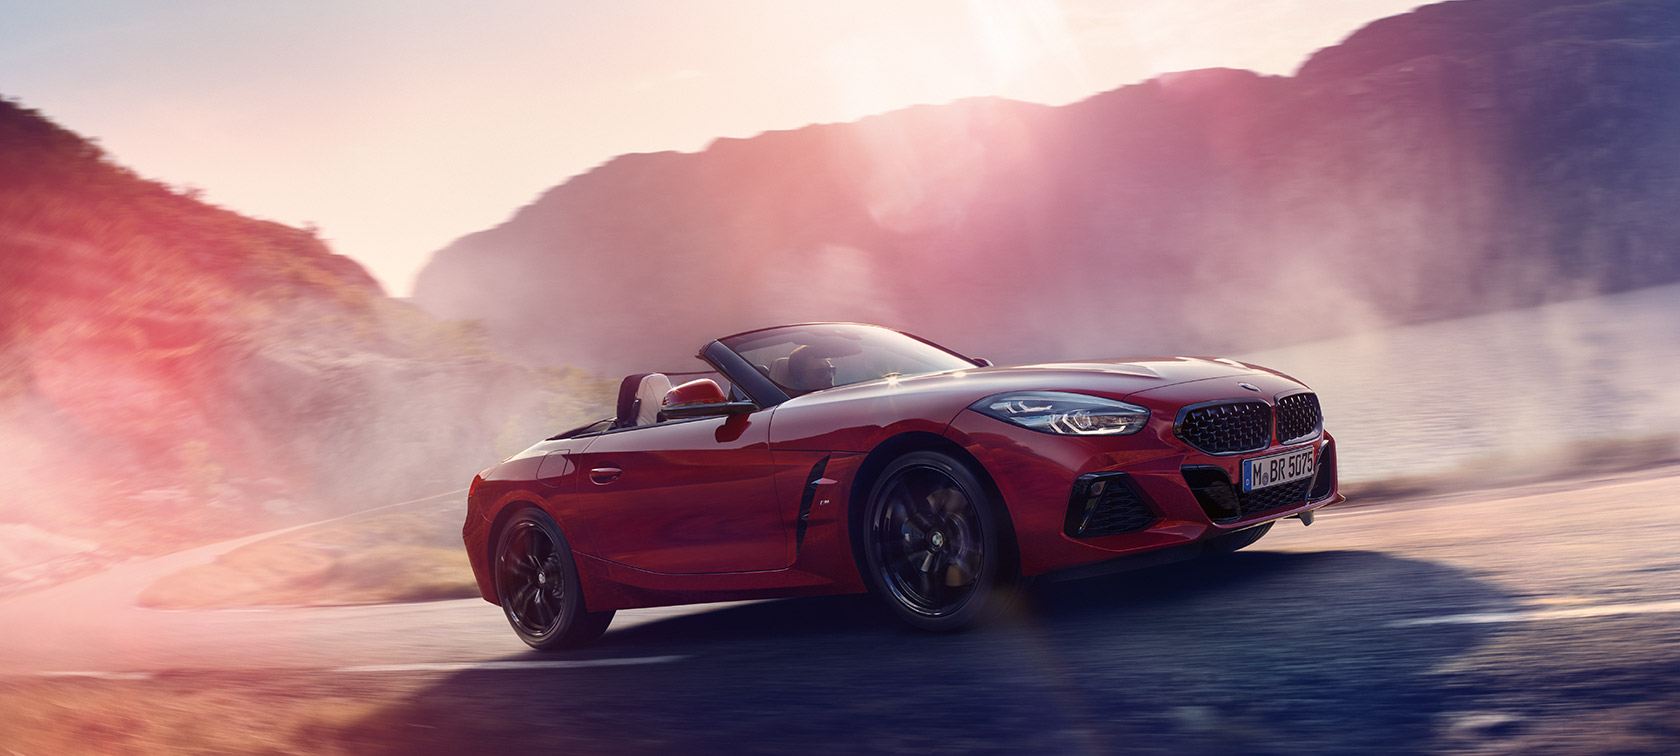 BMW Z Series Roadster: driving uphill in convertible red car.